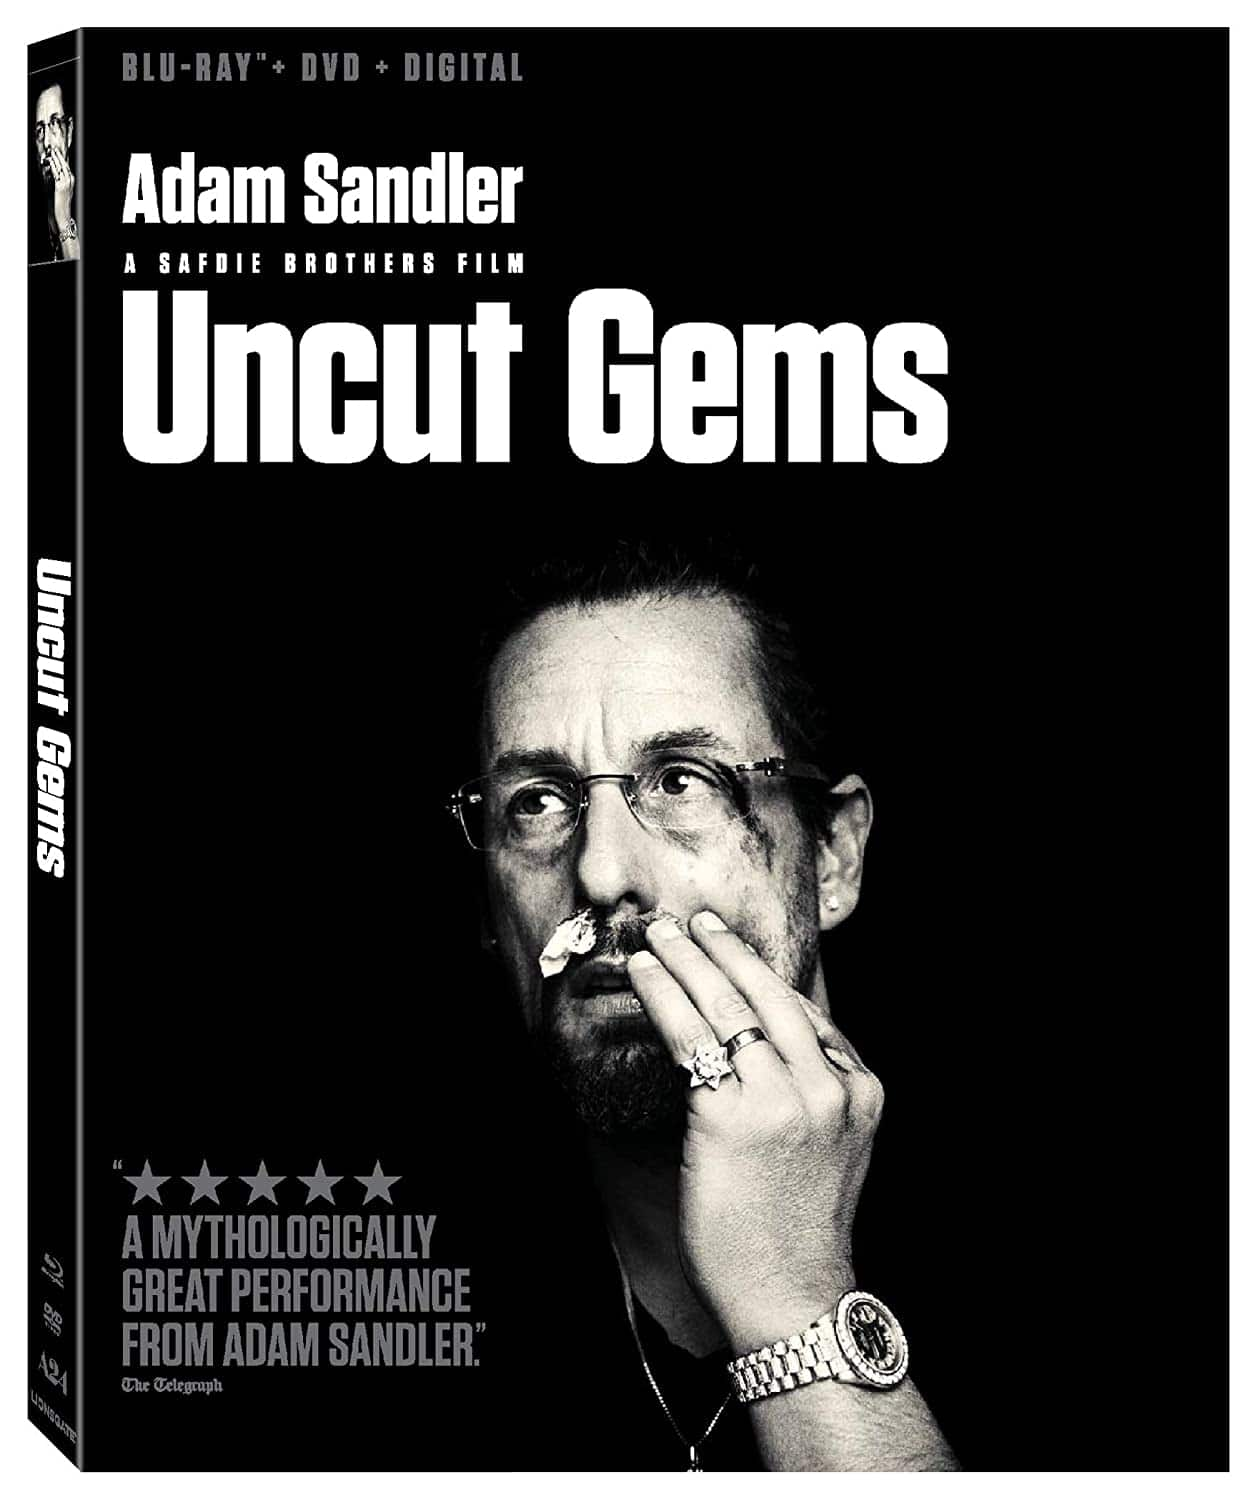 Uncut Gems - Blu-ray/DVD/Digital HD - $13.33 Amazon